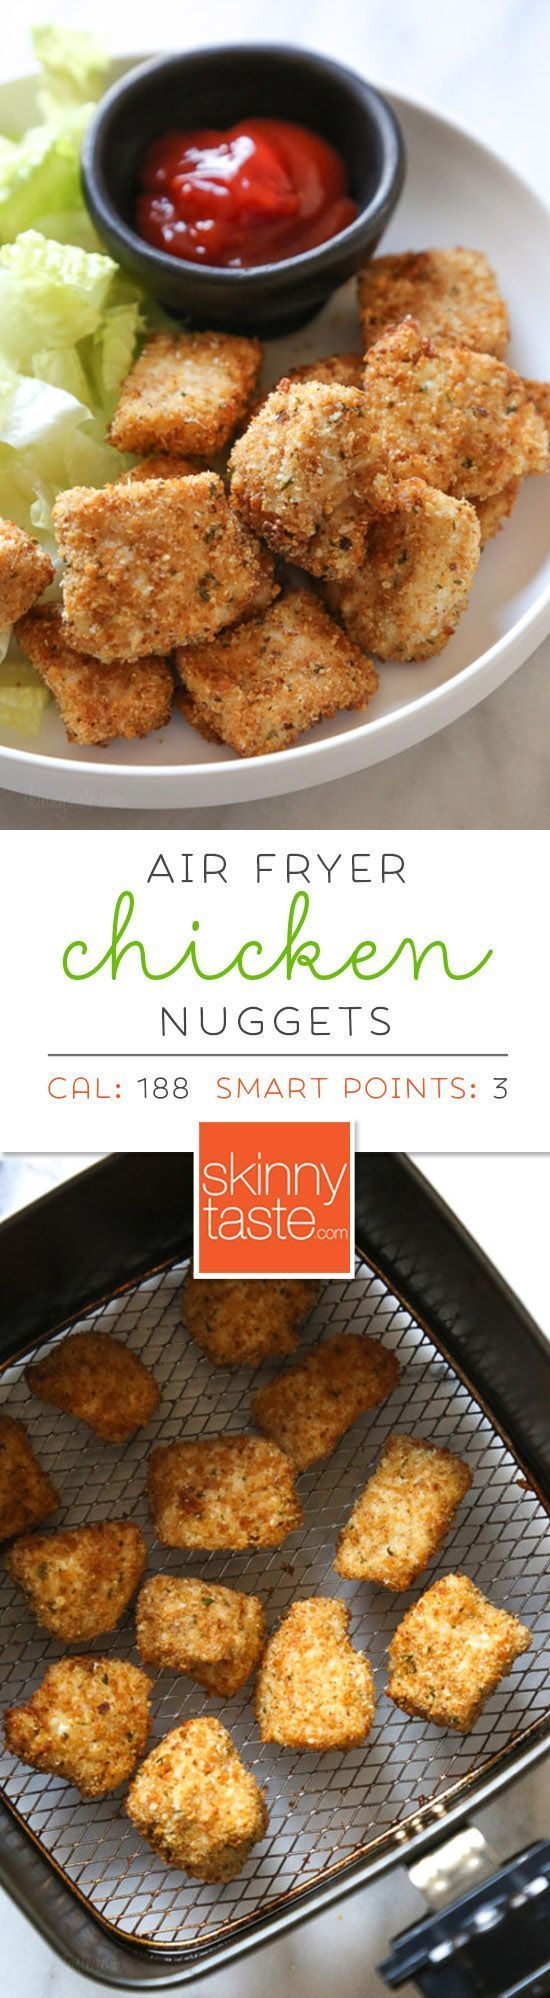 Making homemade Chicken Nuggets in the airfryer is so